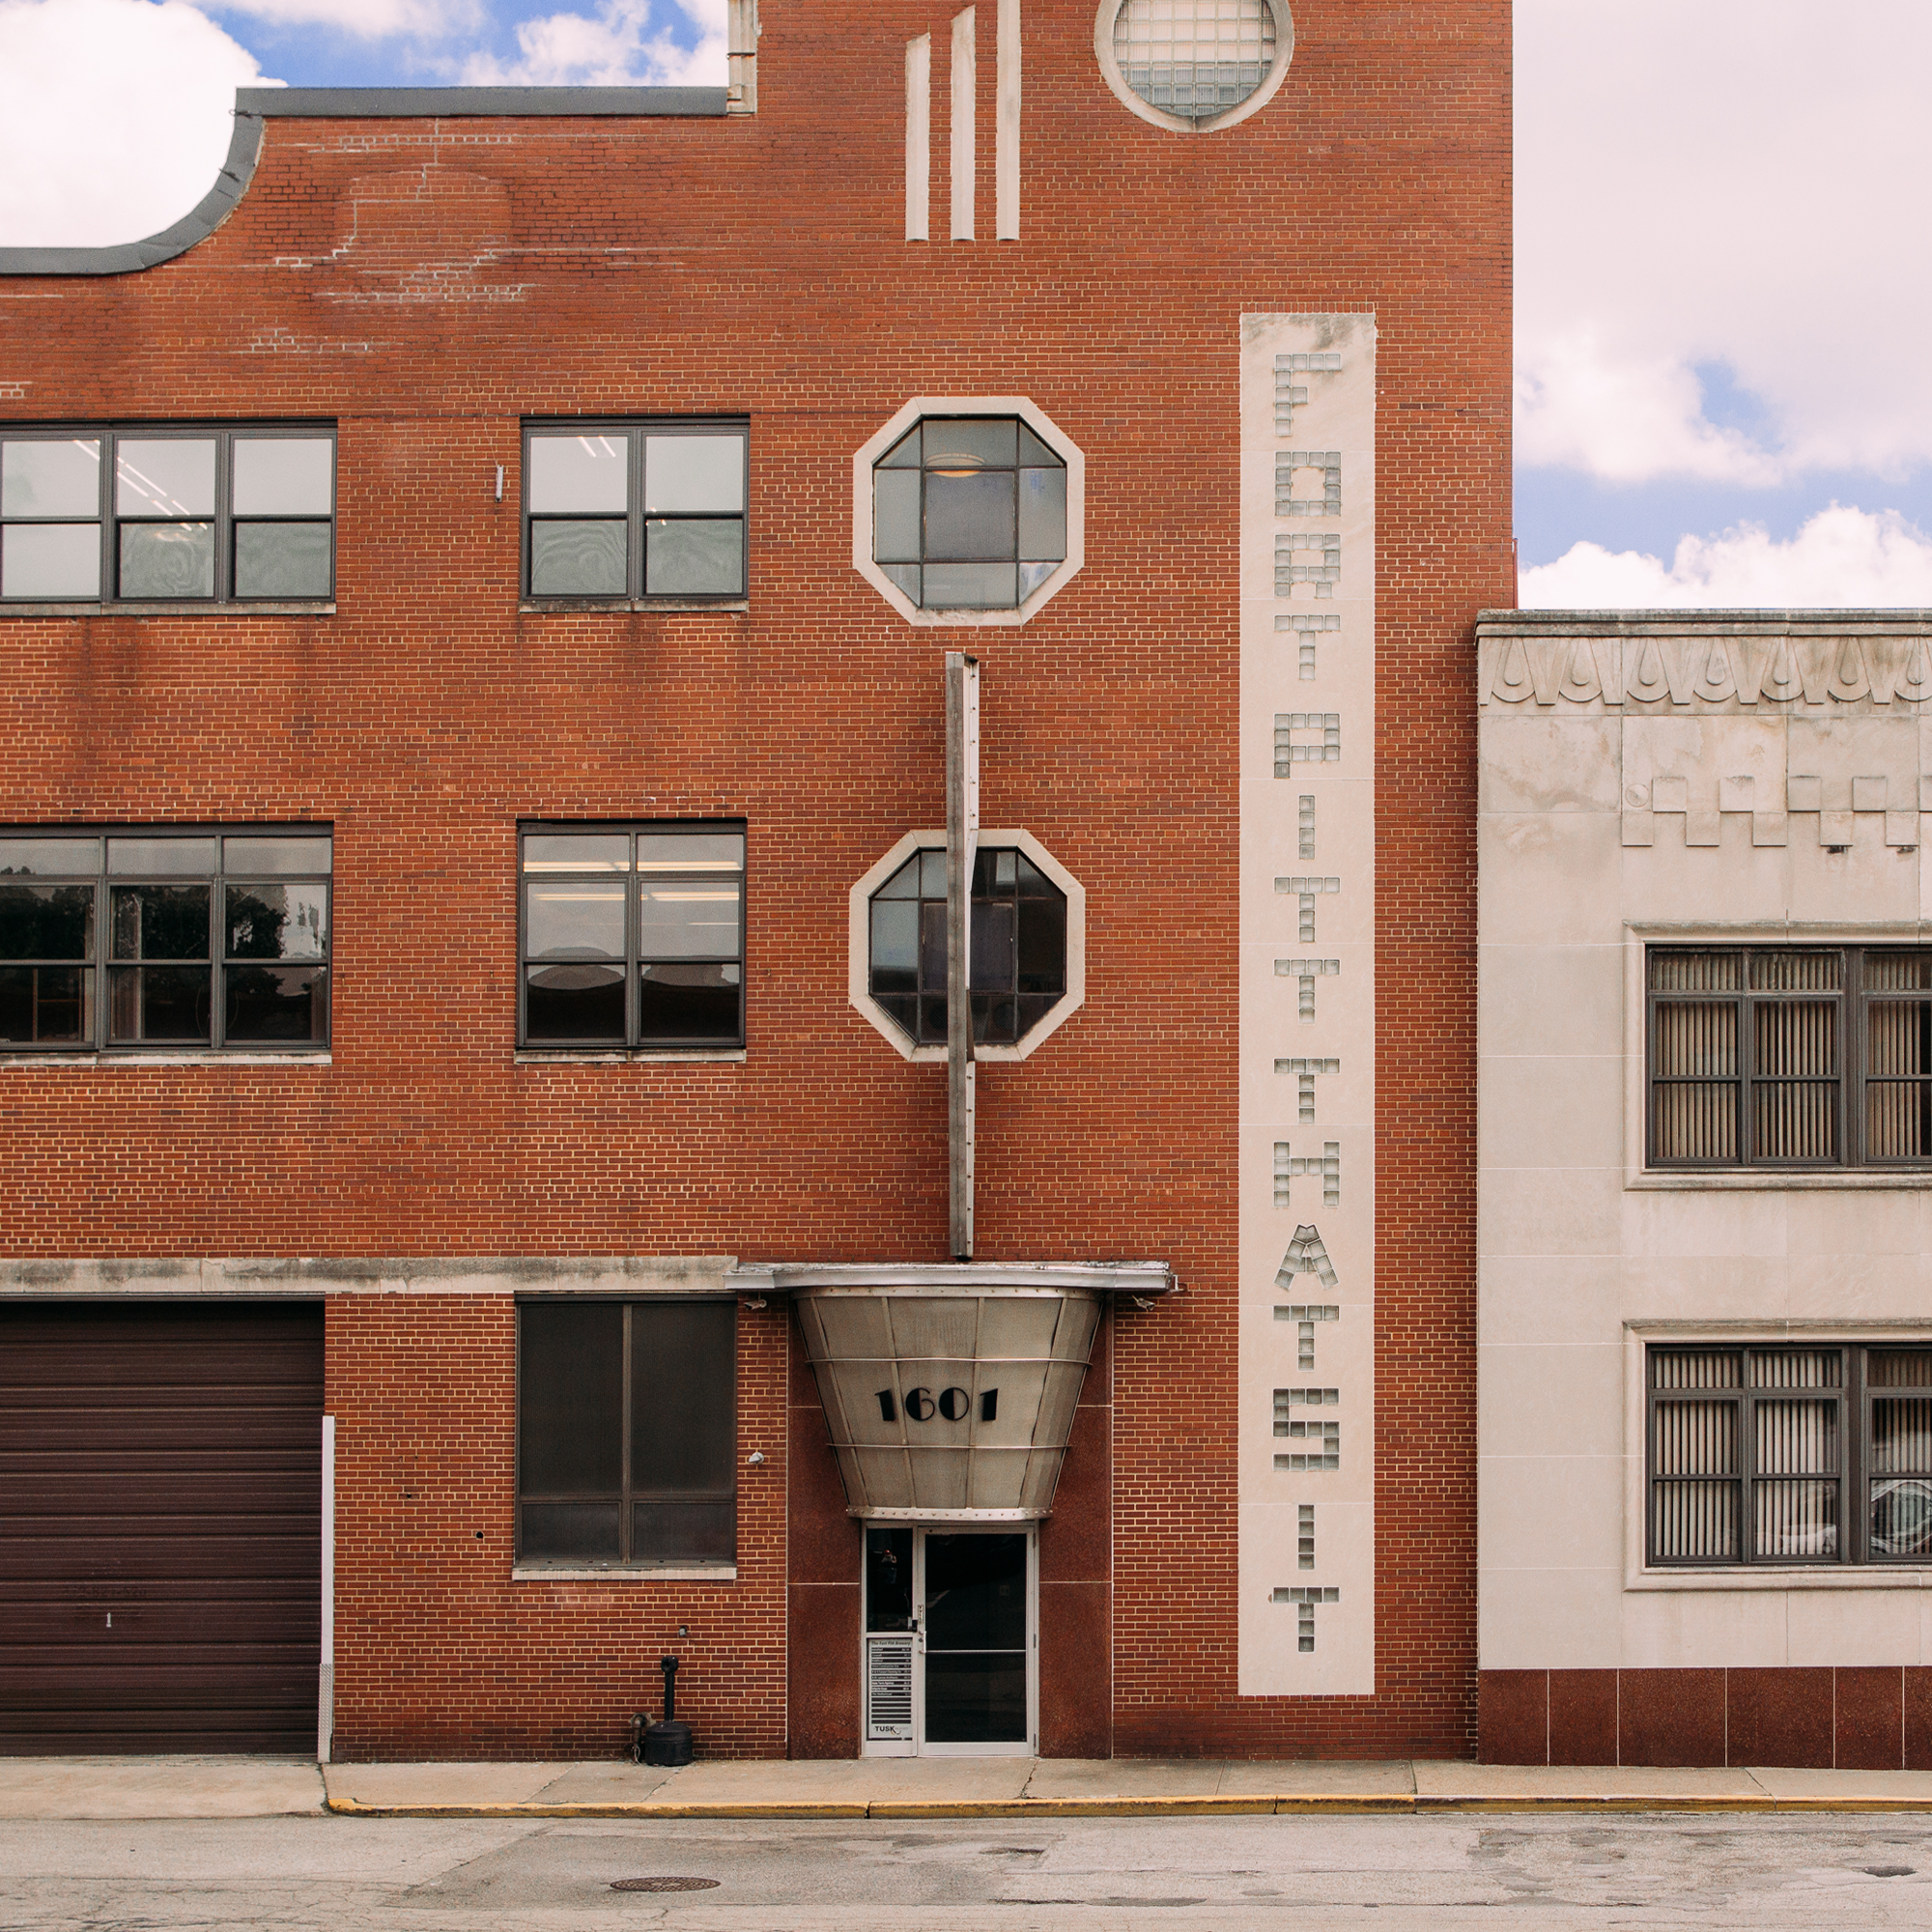 Founded in Pittsburgh, grounded in Sharpsburg. - We're proud to be from a city of disruptors, innovators, and makers. Our office and state-of-the-art prototyping facility are located in the Old Fort Pitt Brewery building, nestled in Pittsburgh's historic Sharpsburg neighborhood.